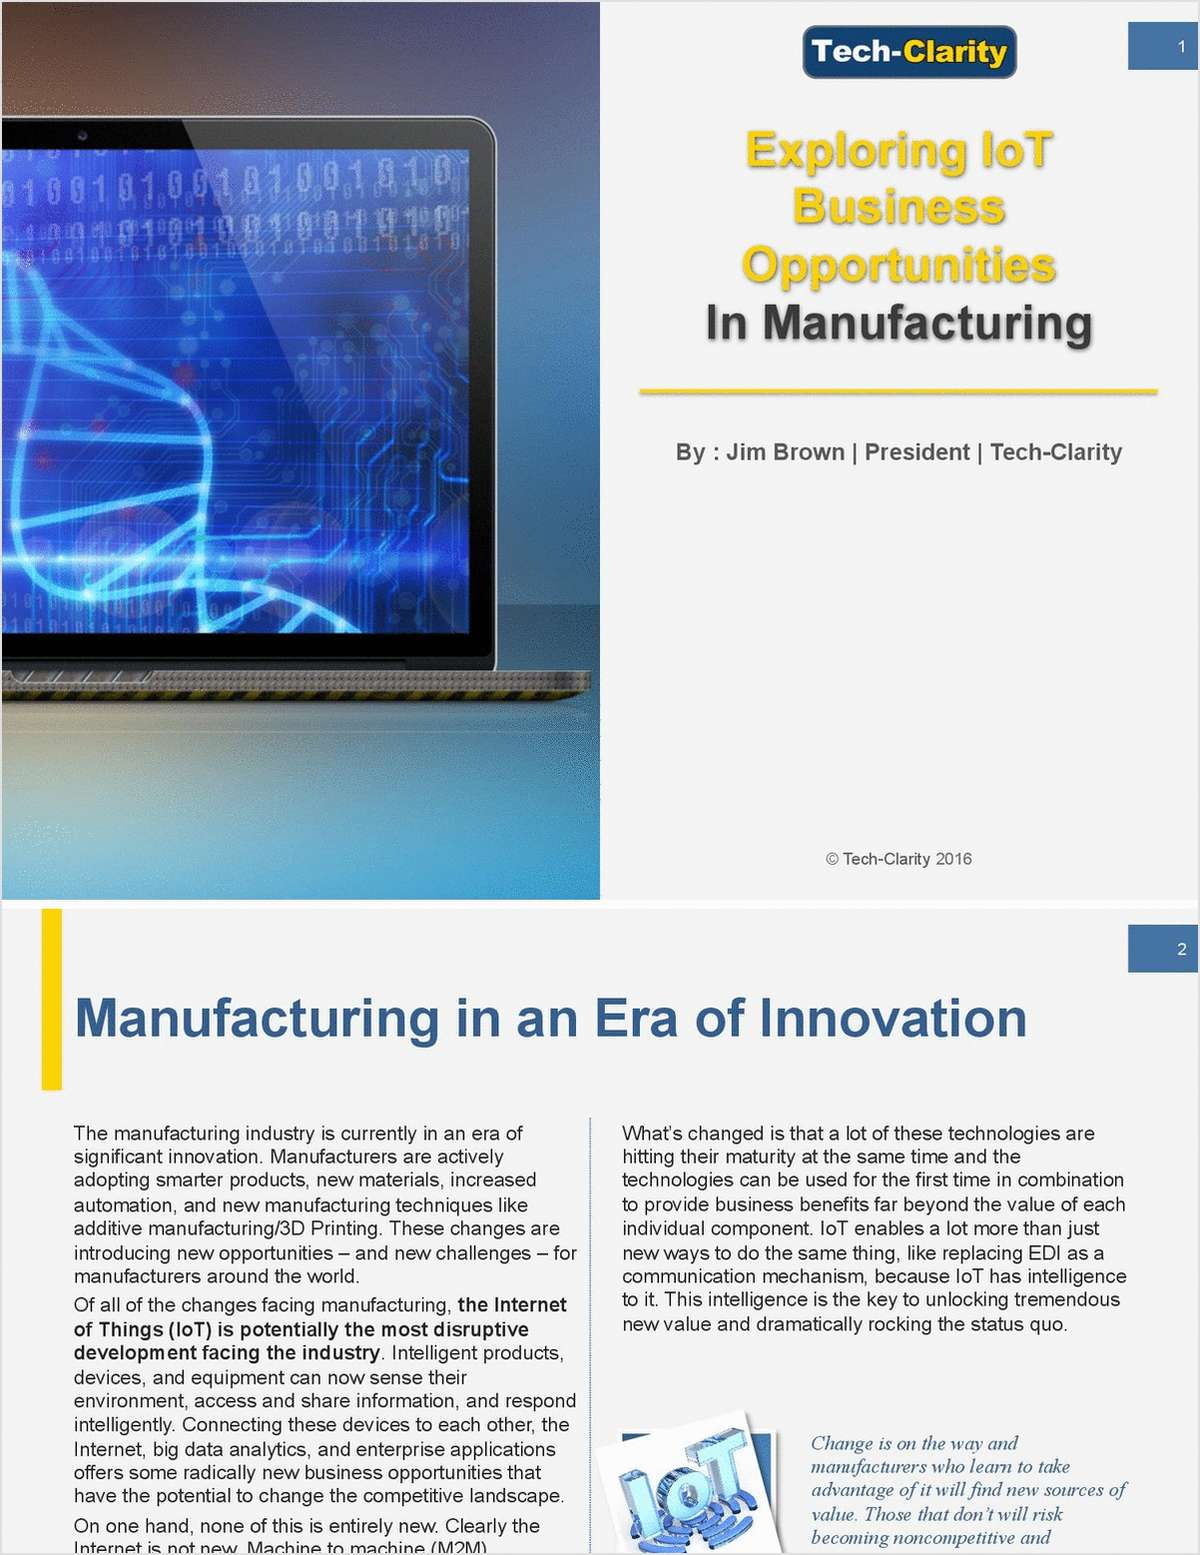 Exploring IoT Business Opportunities in Manufacturing